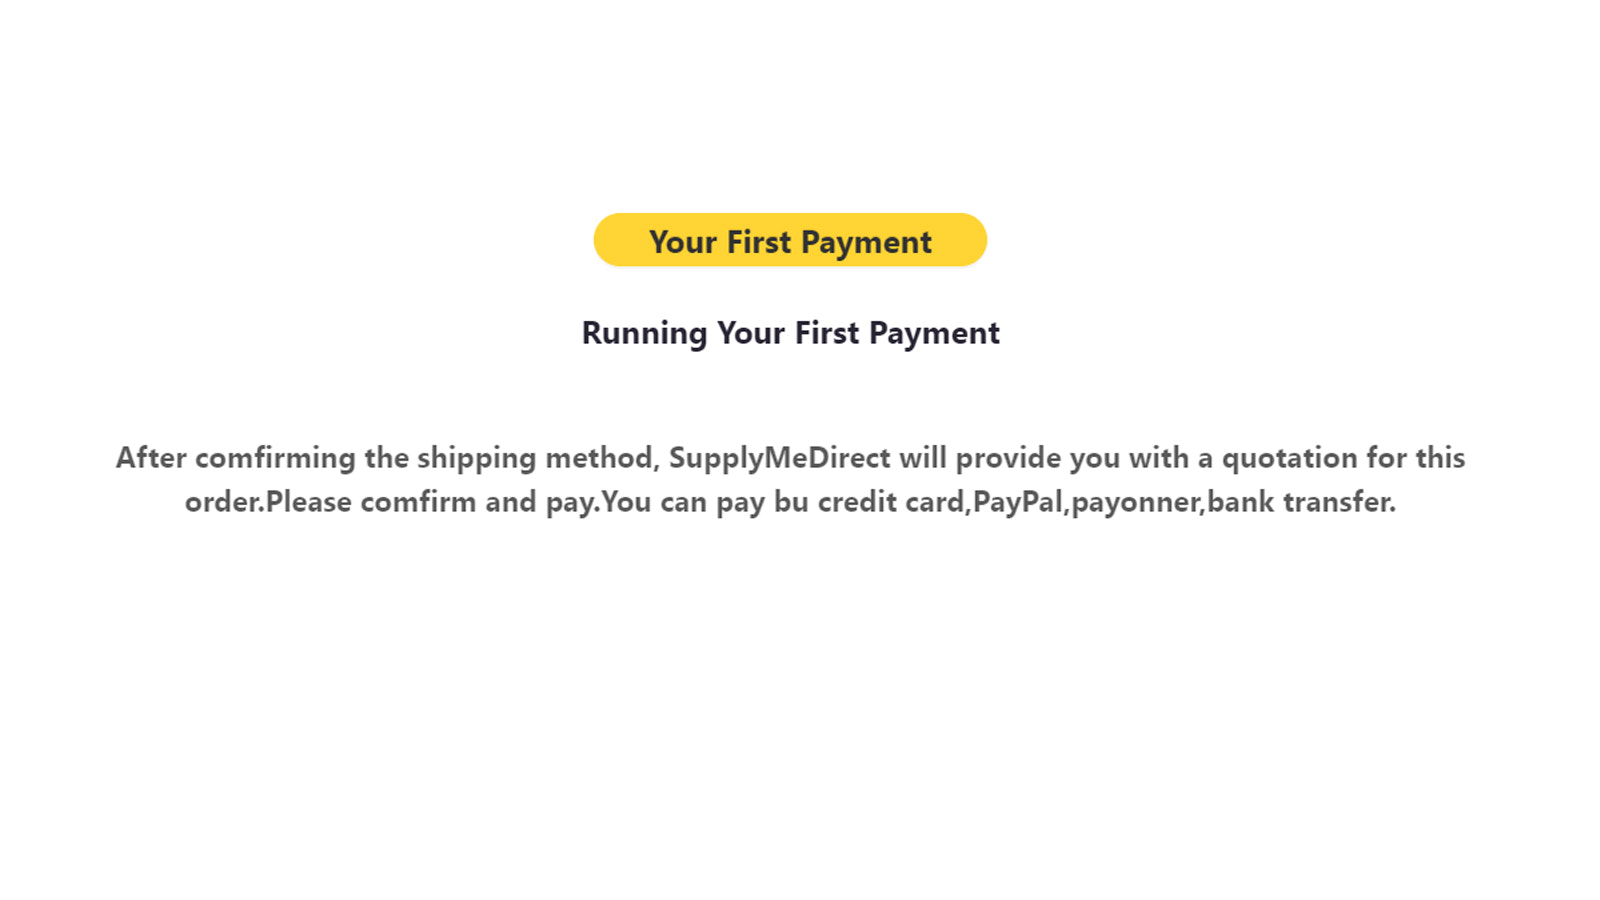 Running Your First Payment